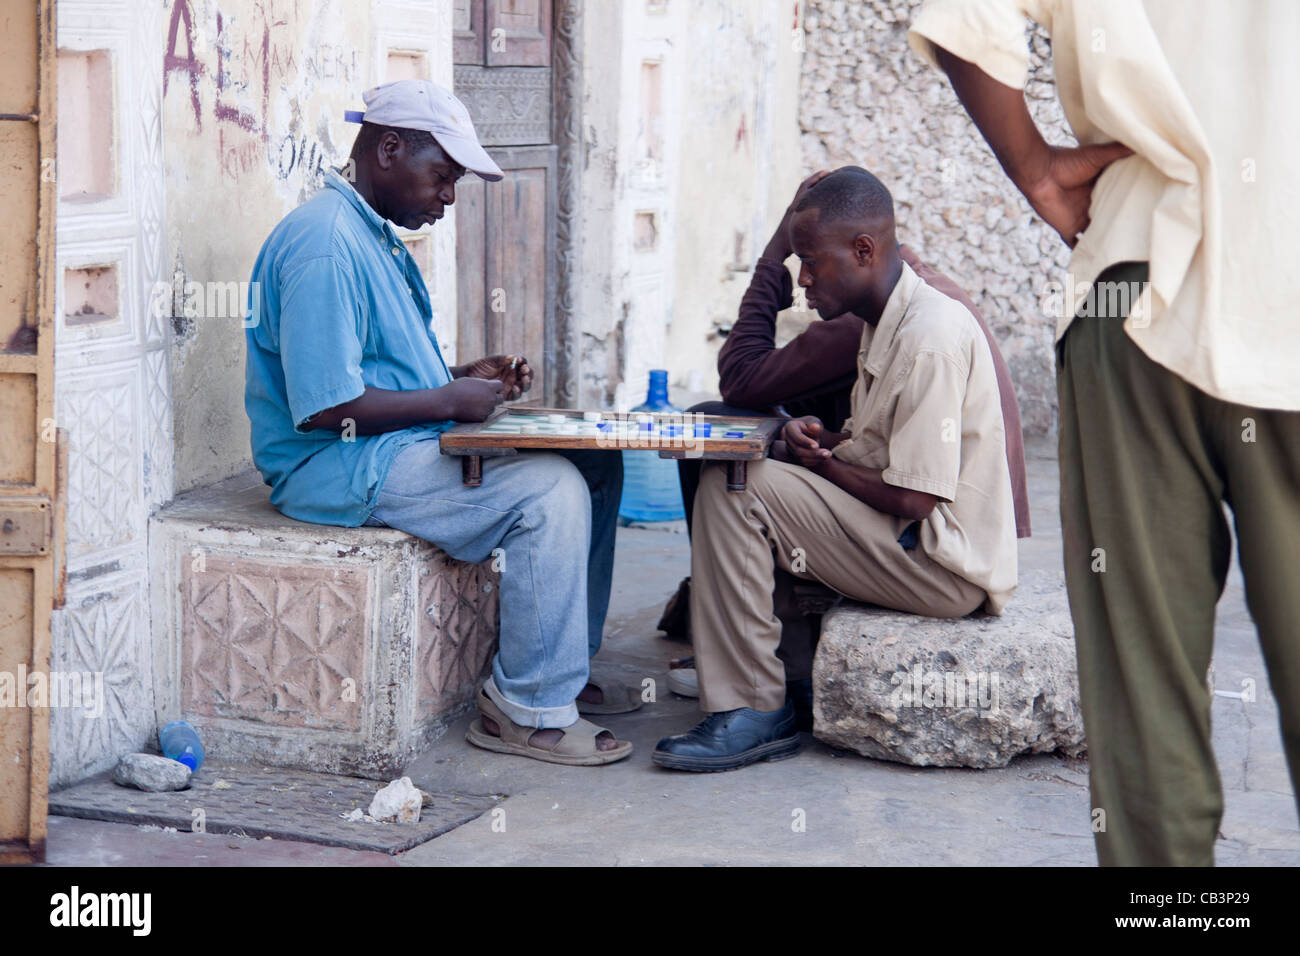 Men playing draughts board game in the back streets of Mombasa, Kenya - Stock Image